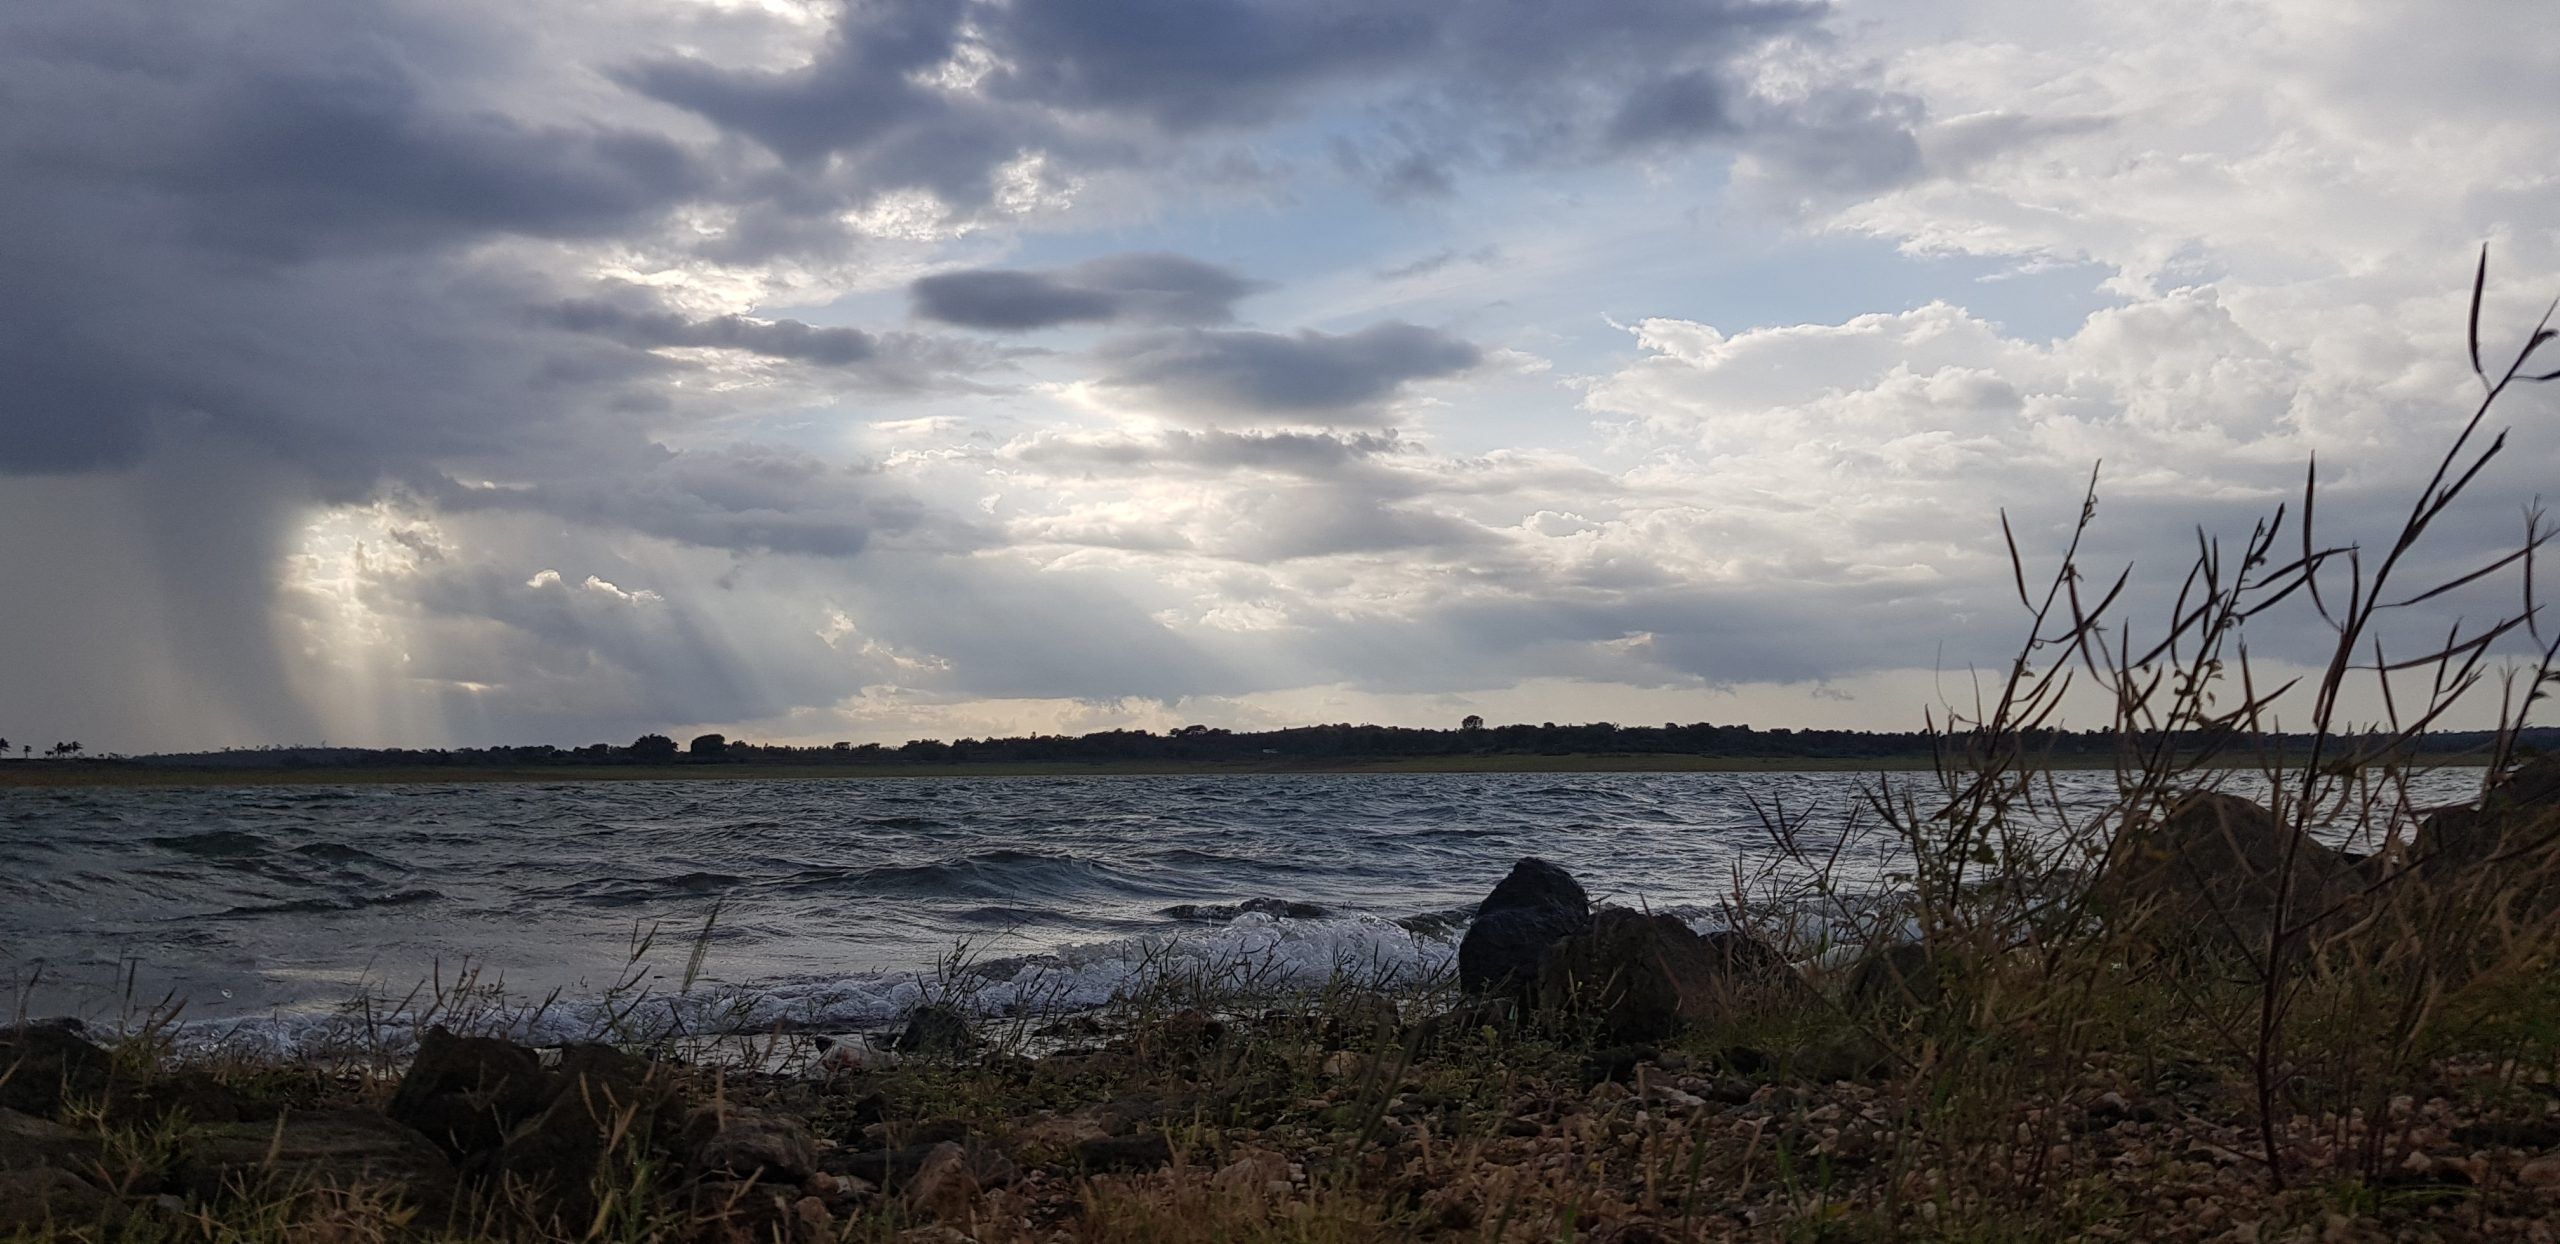 Landscape of water and clouds